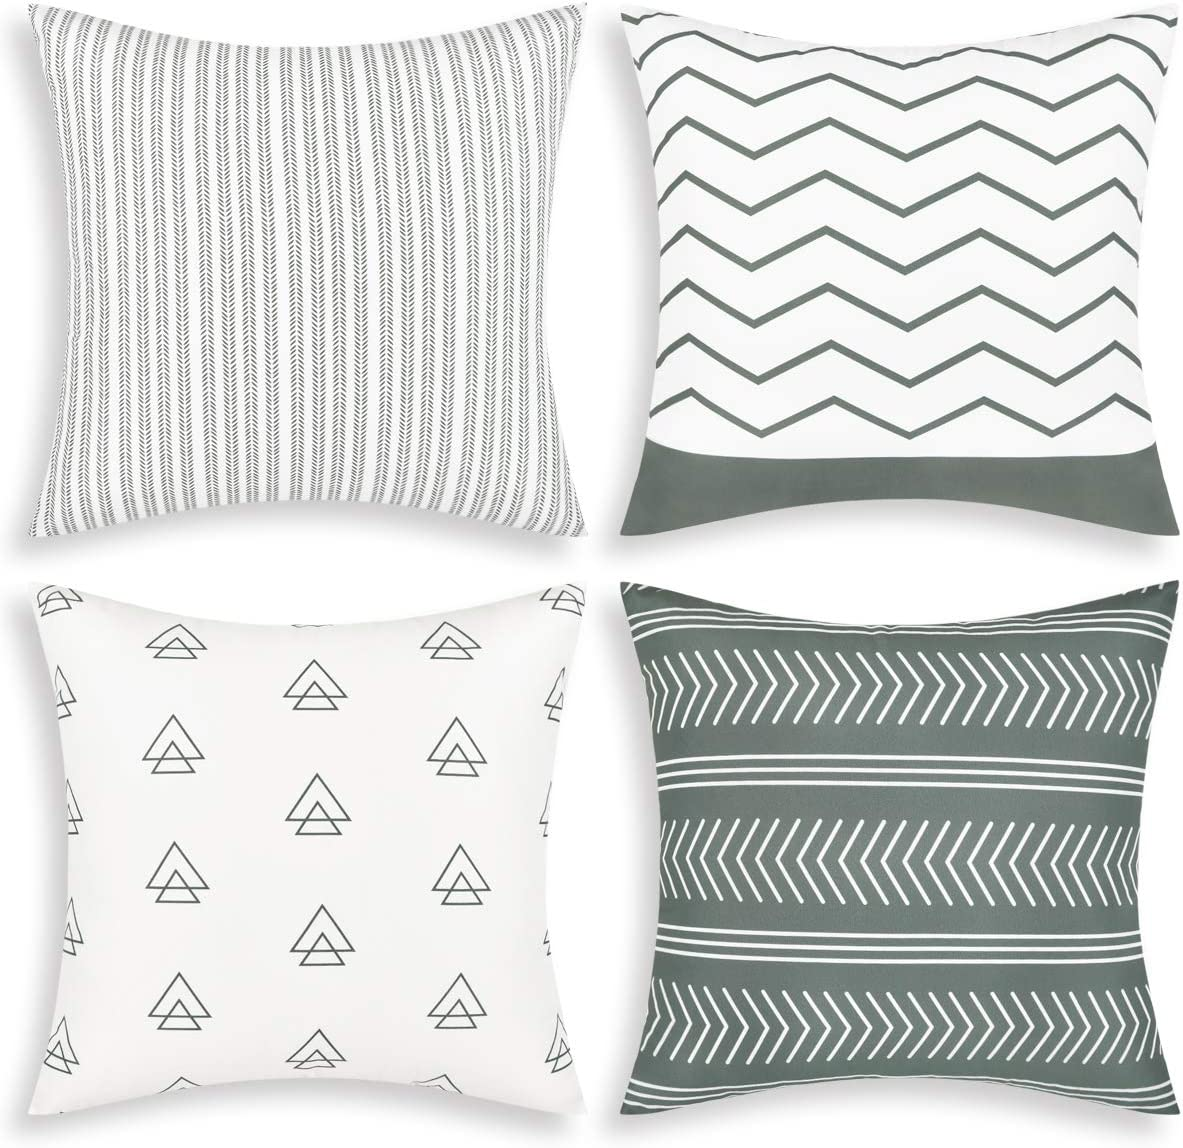 Fascidorm Discount is also underway Set of 4 Pillow Covers 18 Inch Throw Case Luxury goods x